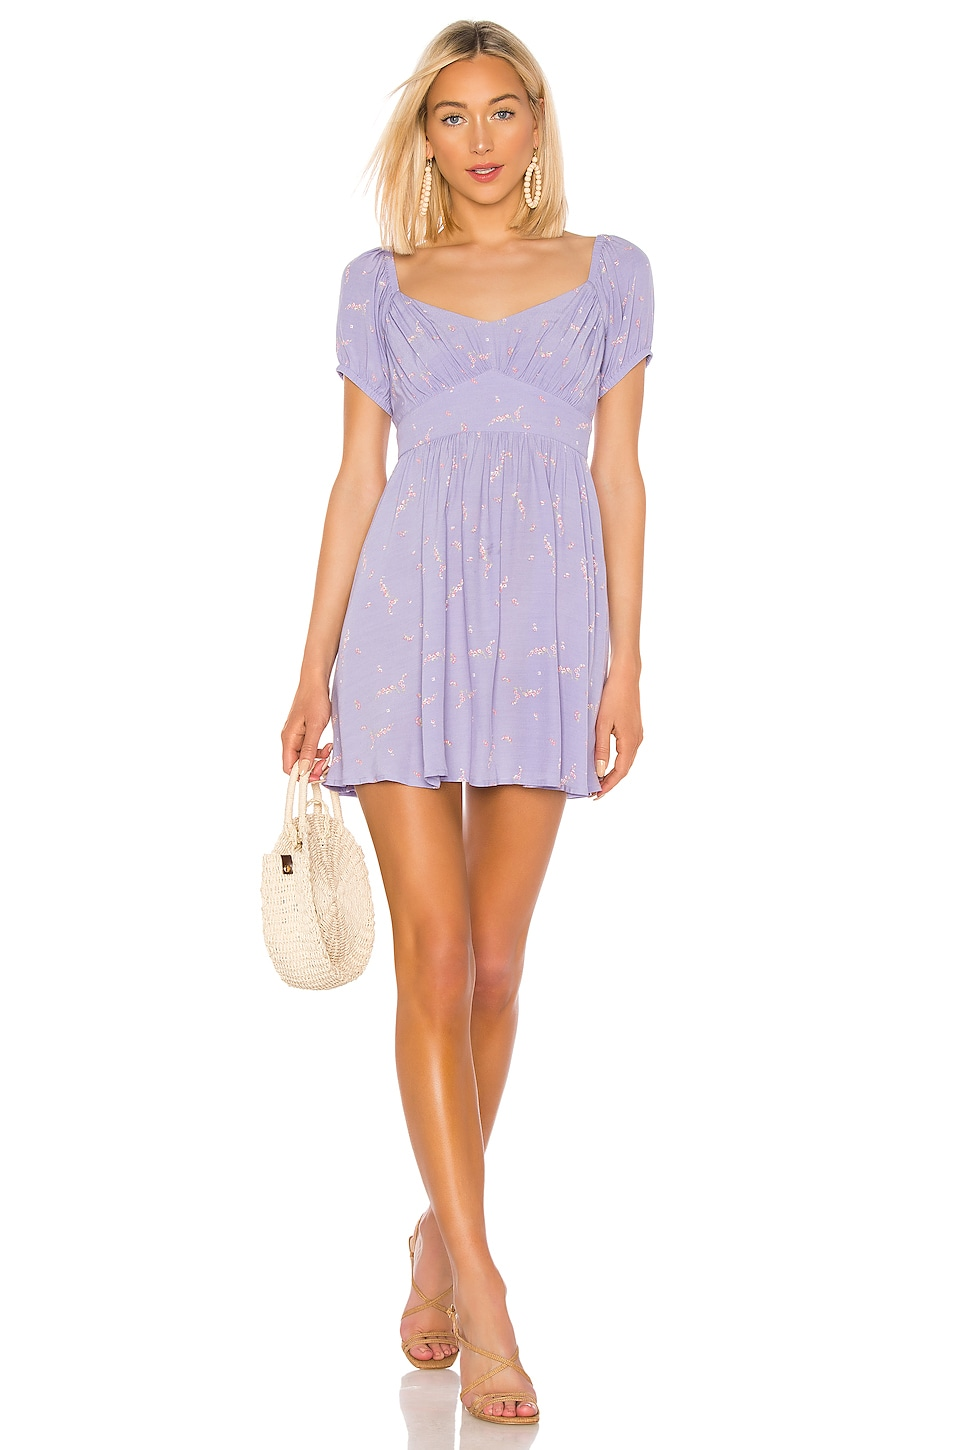 AUGUSTE Clementine Bonne Mini Dress in Lavender